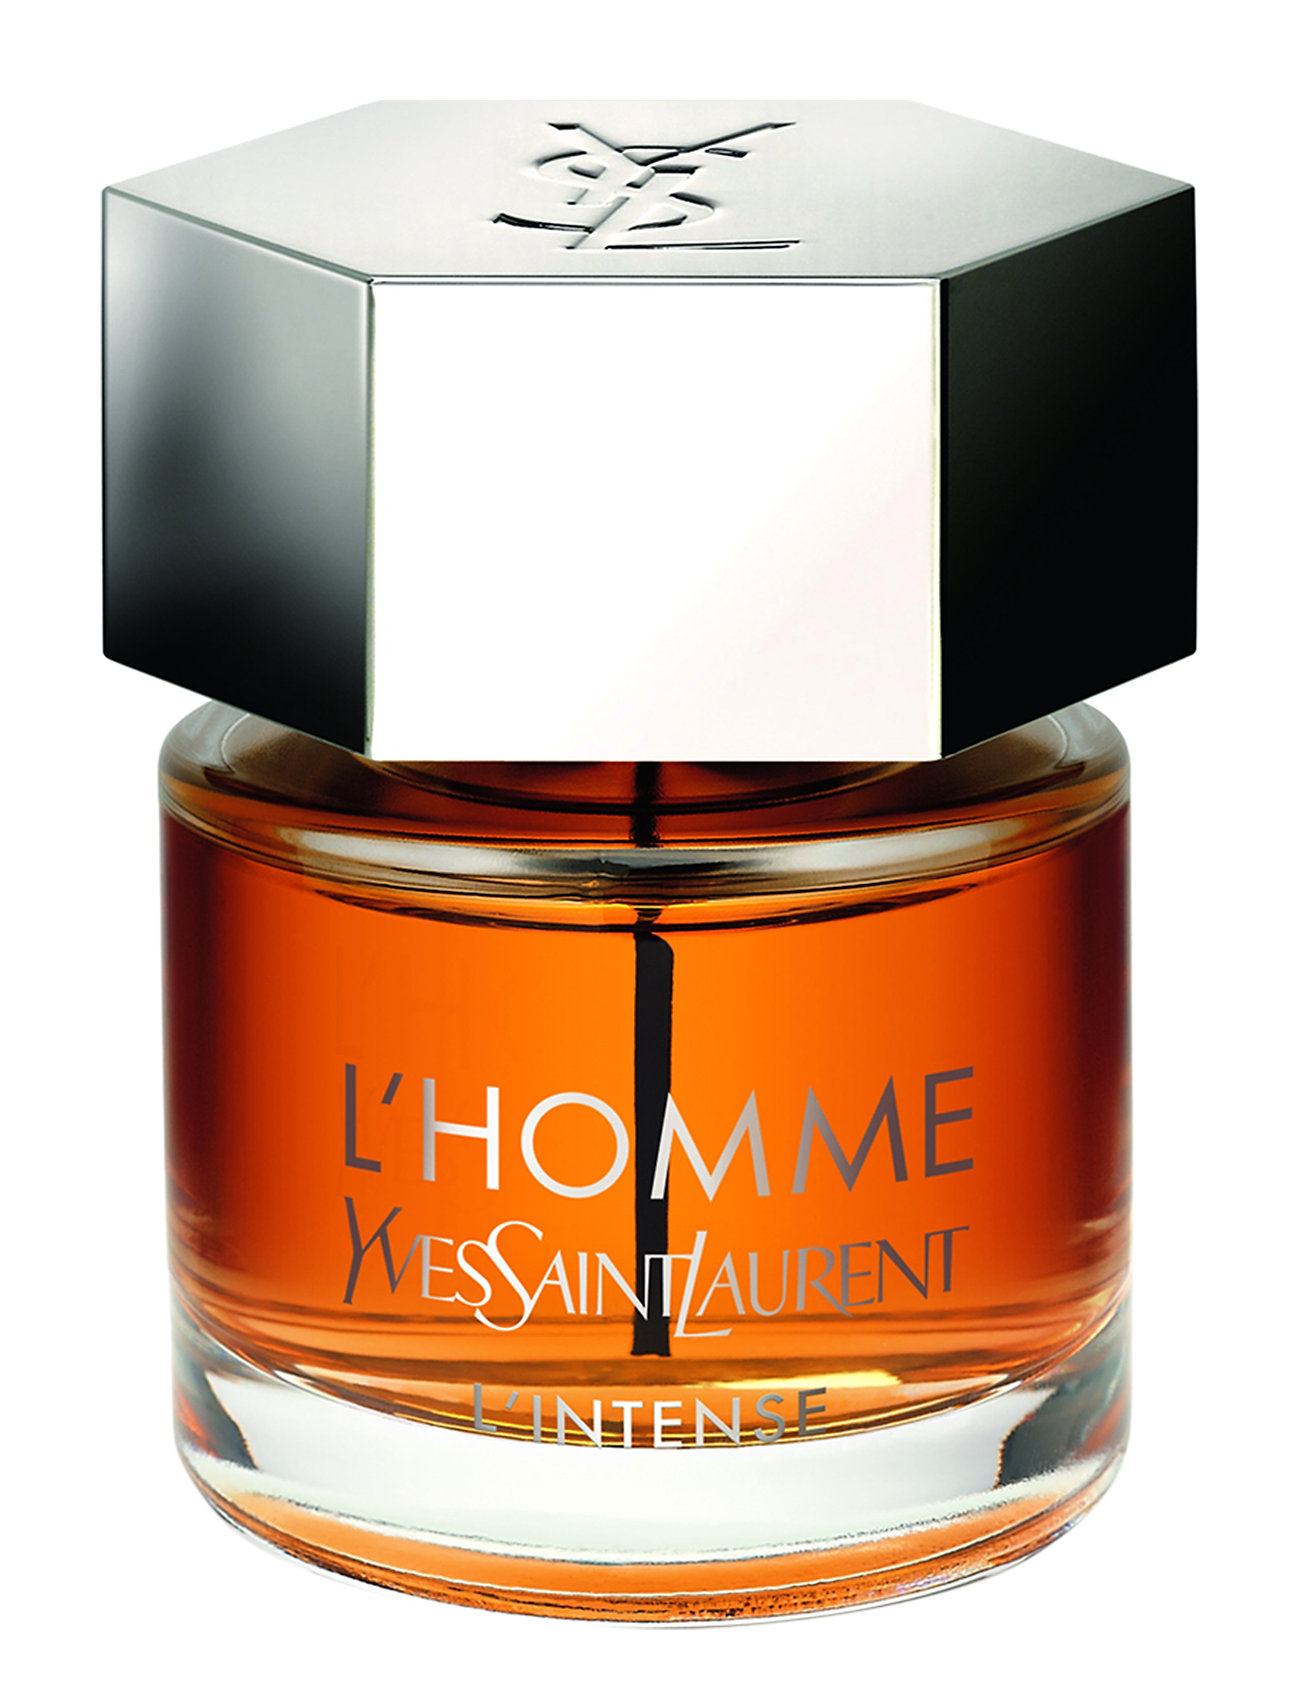 L'homme intense eau de parfum spray 60 ml. fra yves saint laurent på boozt.com dk